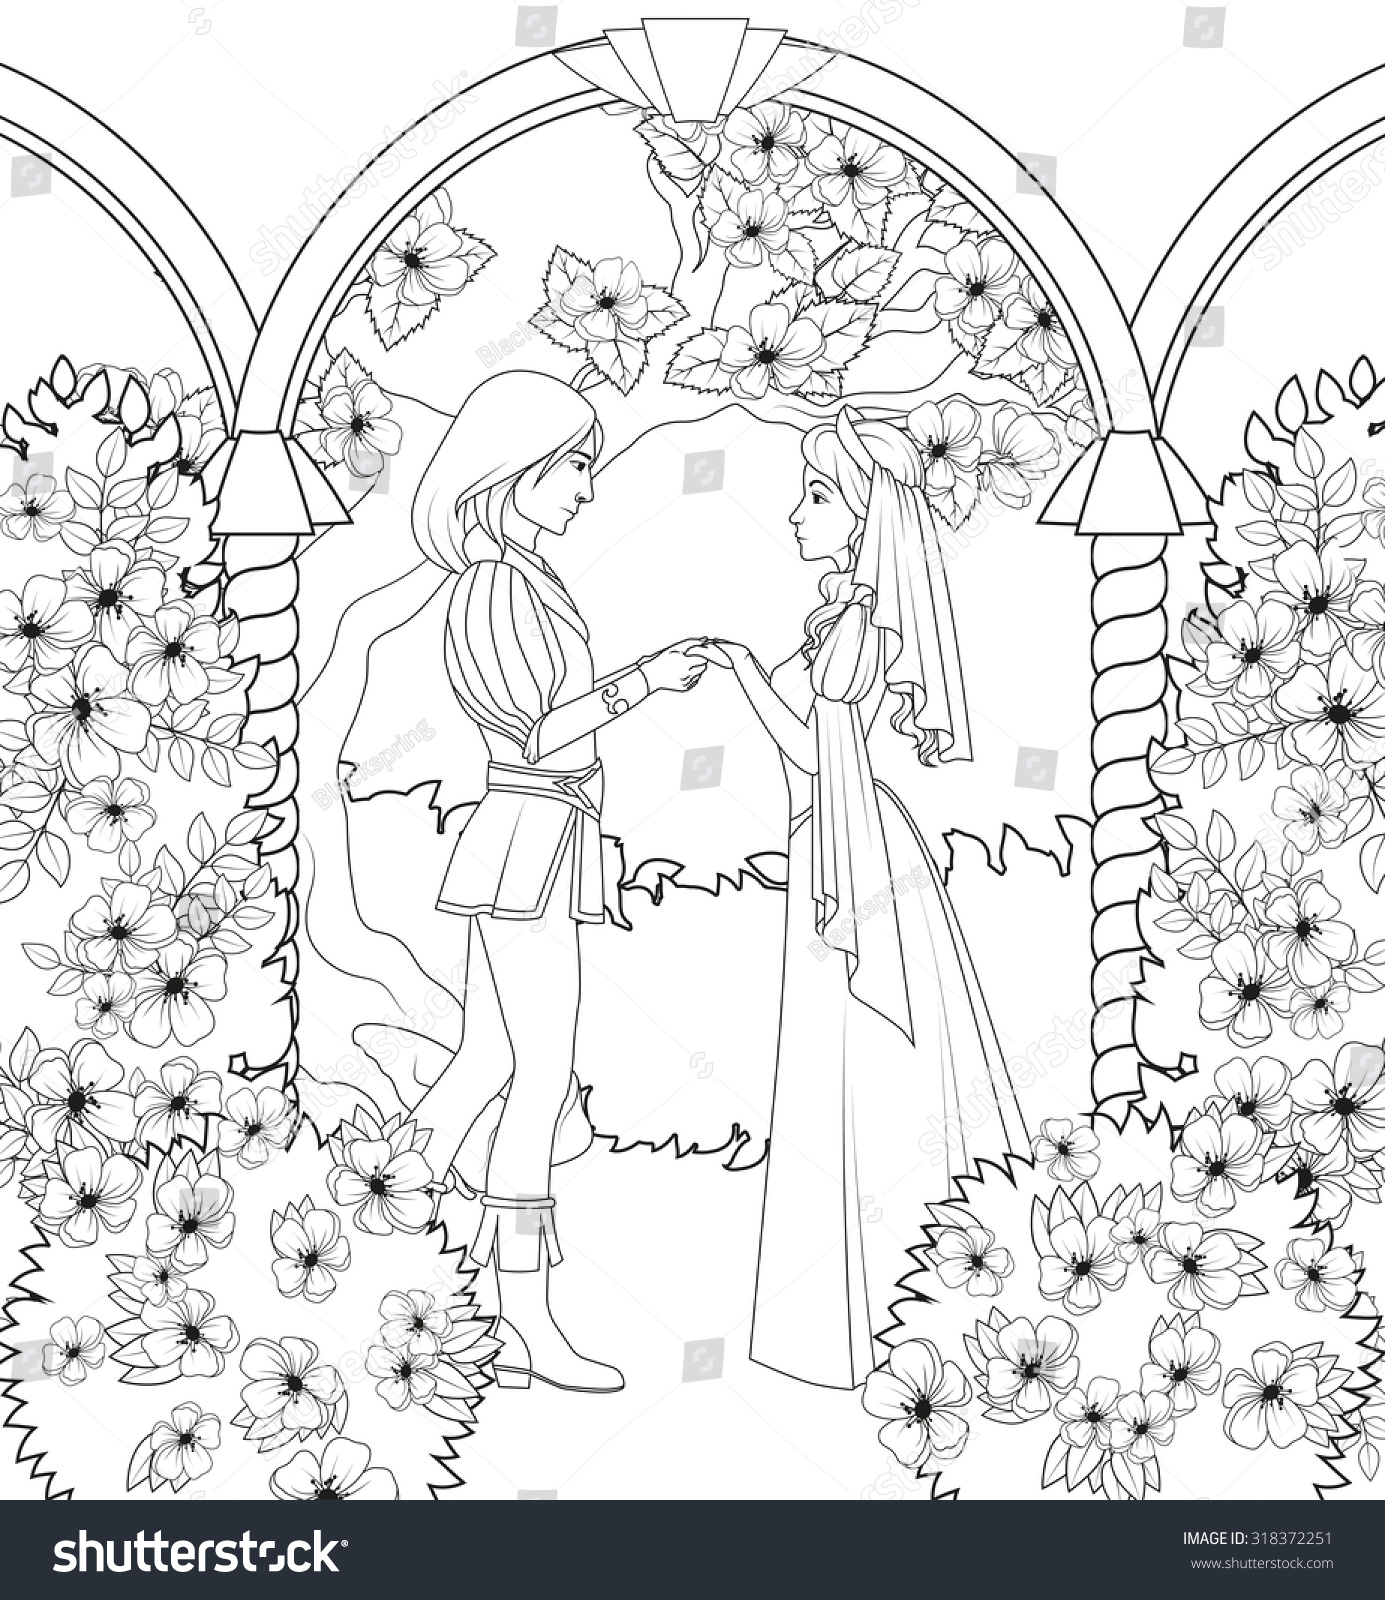 Coloring Book Medieval Couple Holding Hands Stock Illustration ...